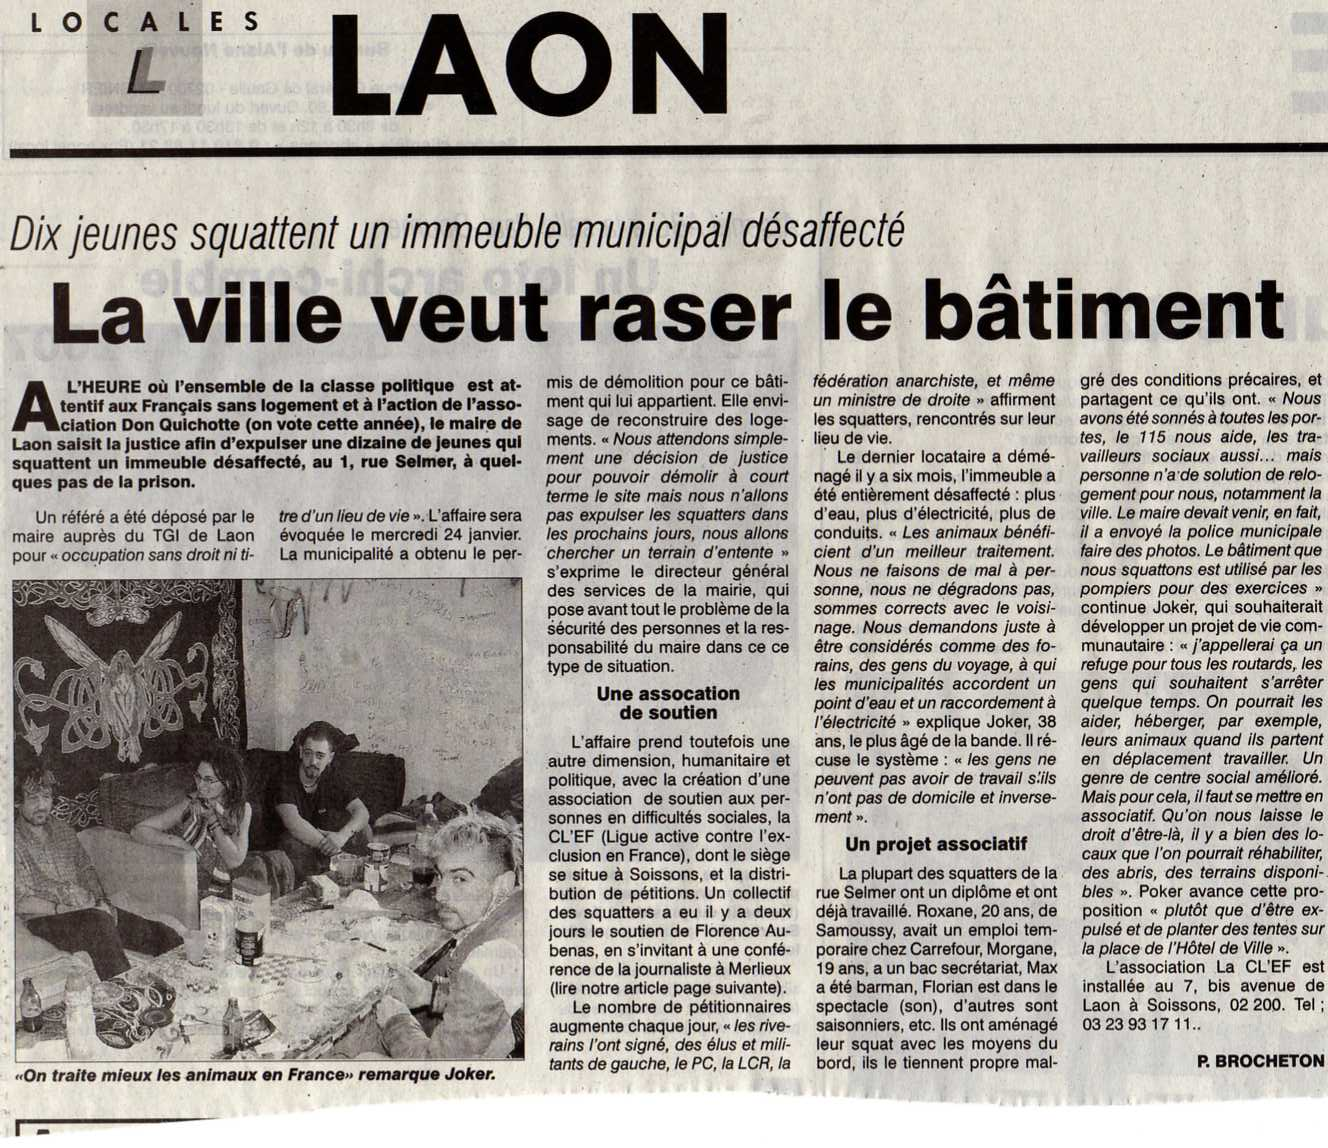 Squat de la rue Selmer, article de presse